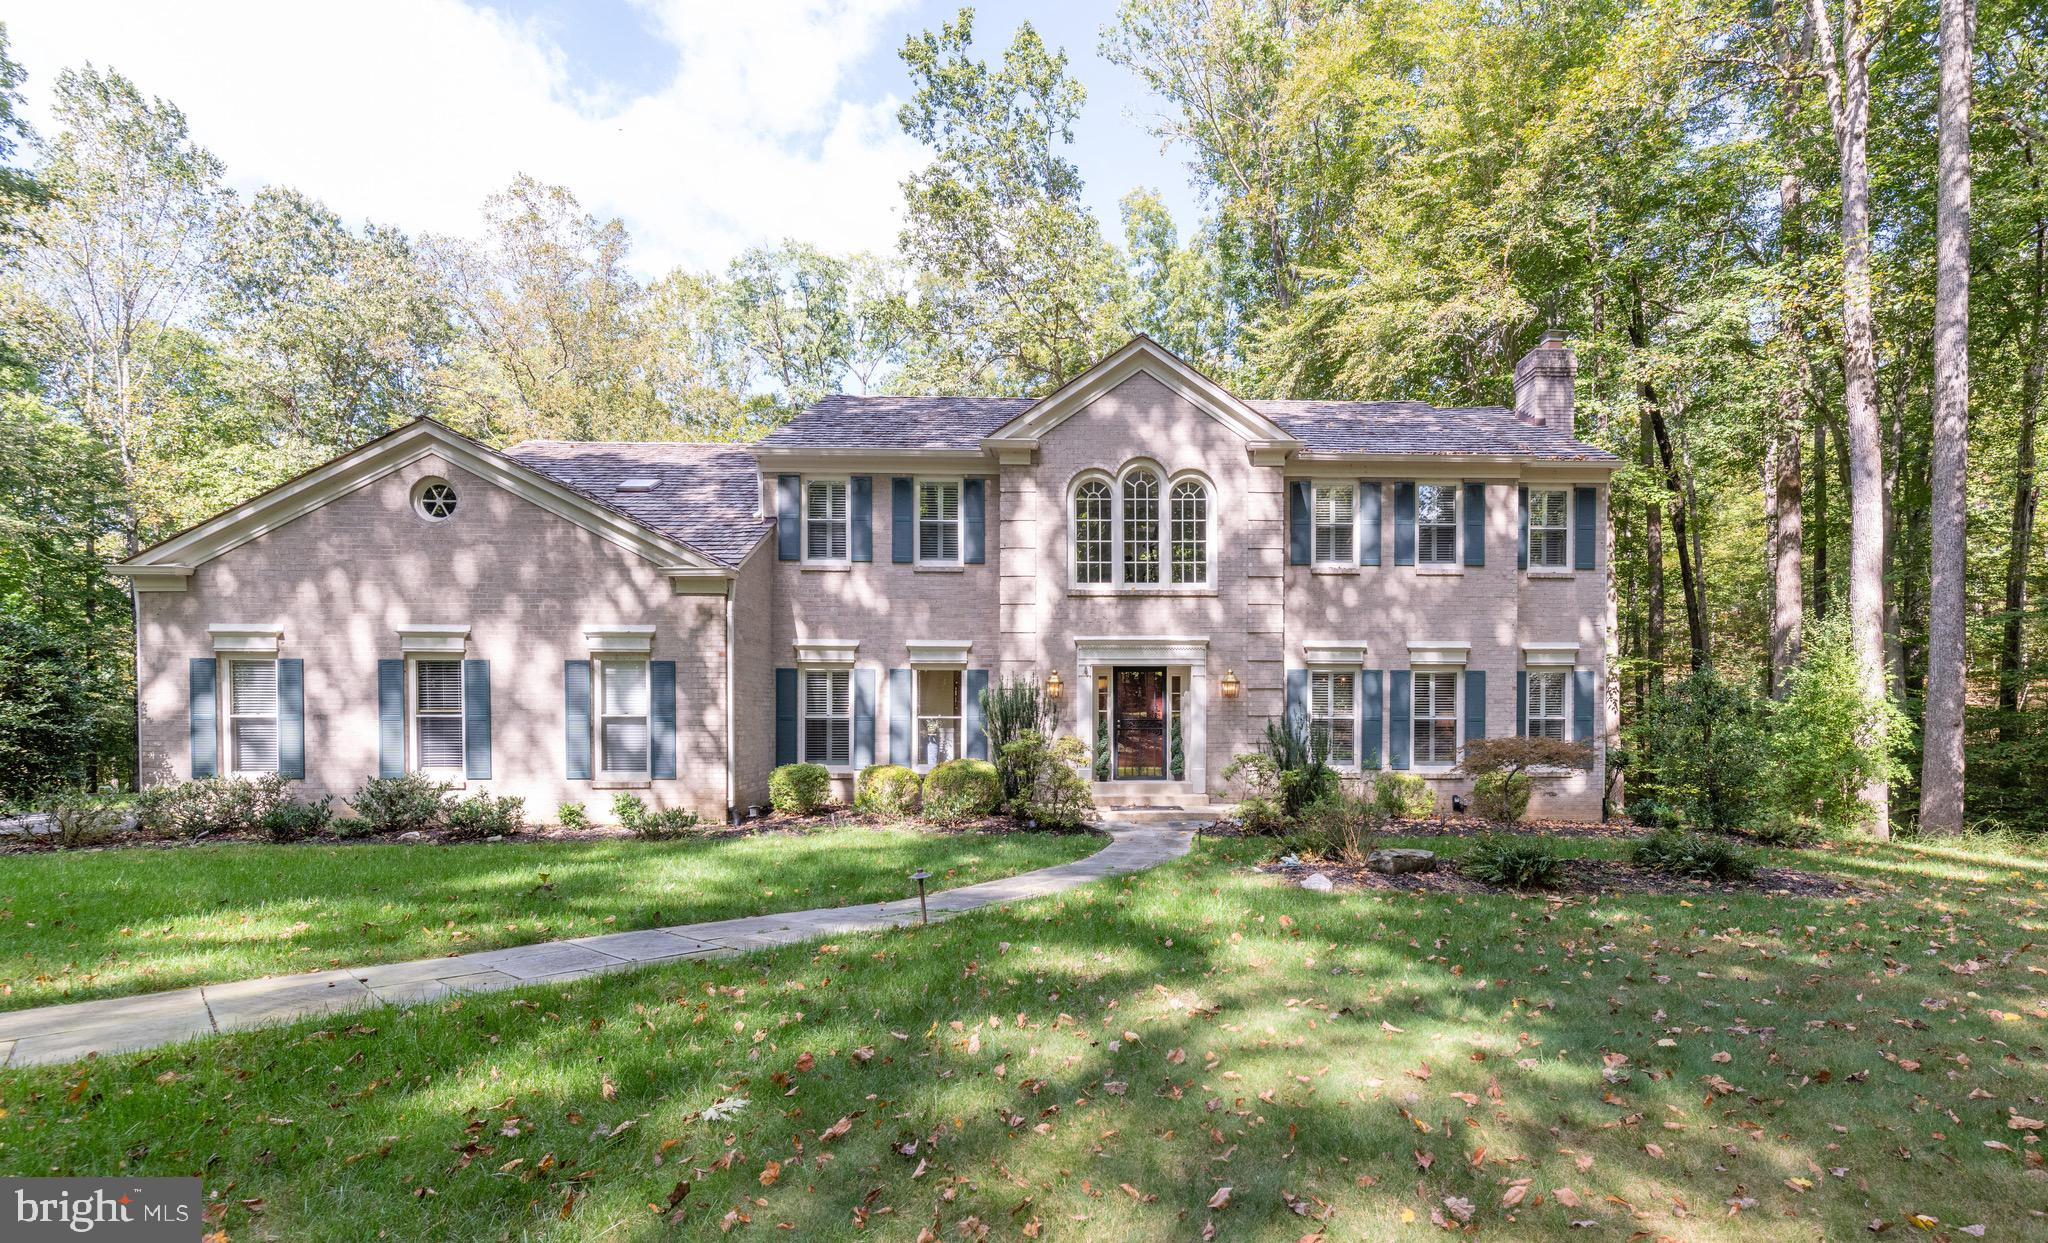 8512 CATHEDRAL FOREST DRIVE, FAIRFAX STATION, VA 22039